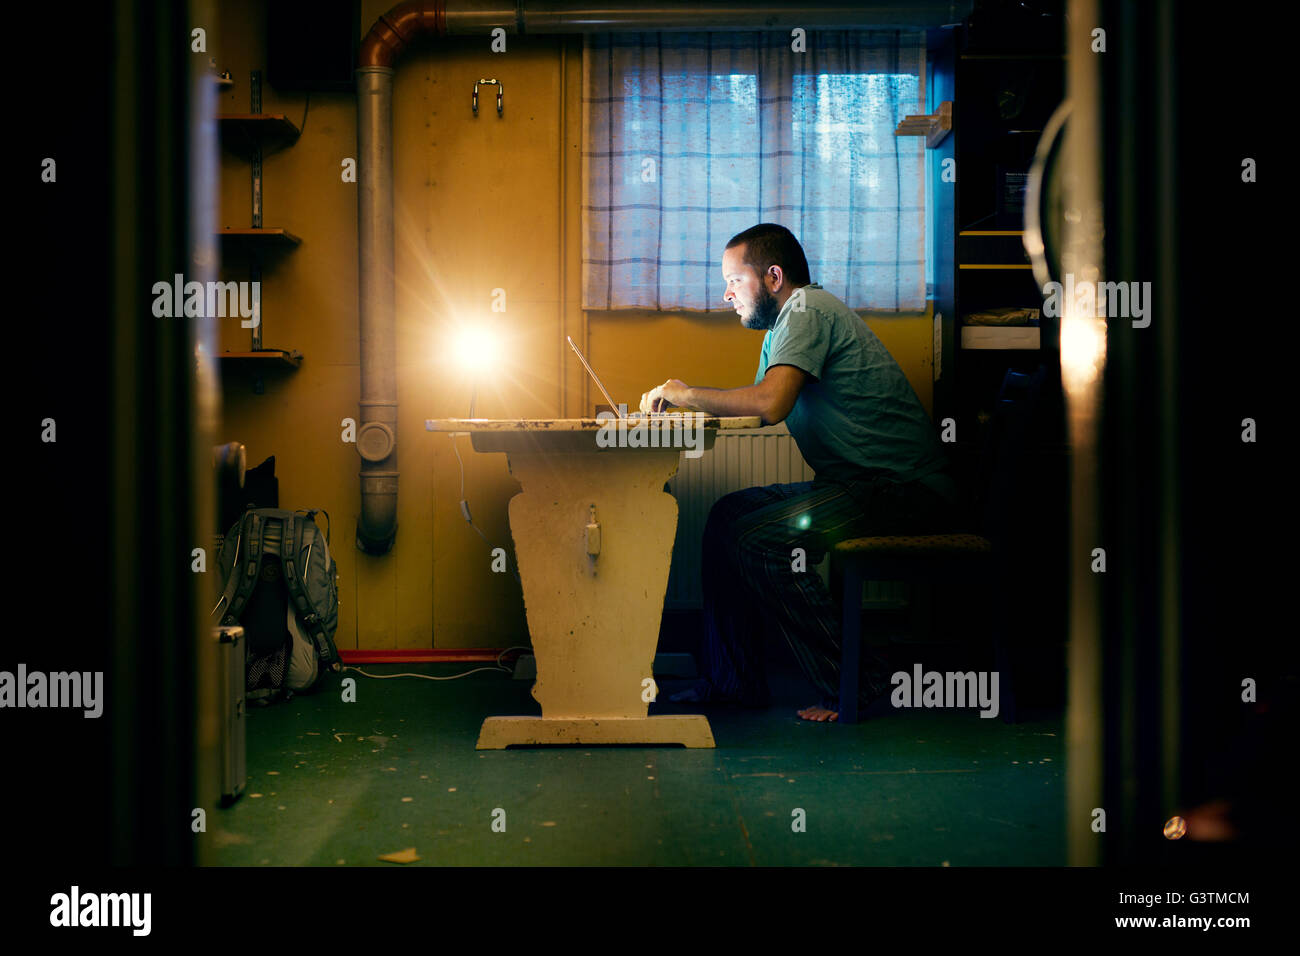 Finland, Man sitting at table and using laptop - Stock Image